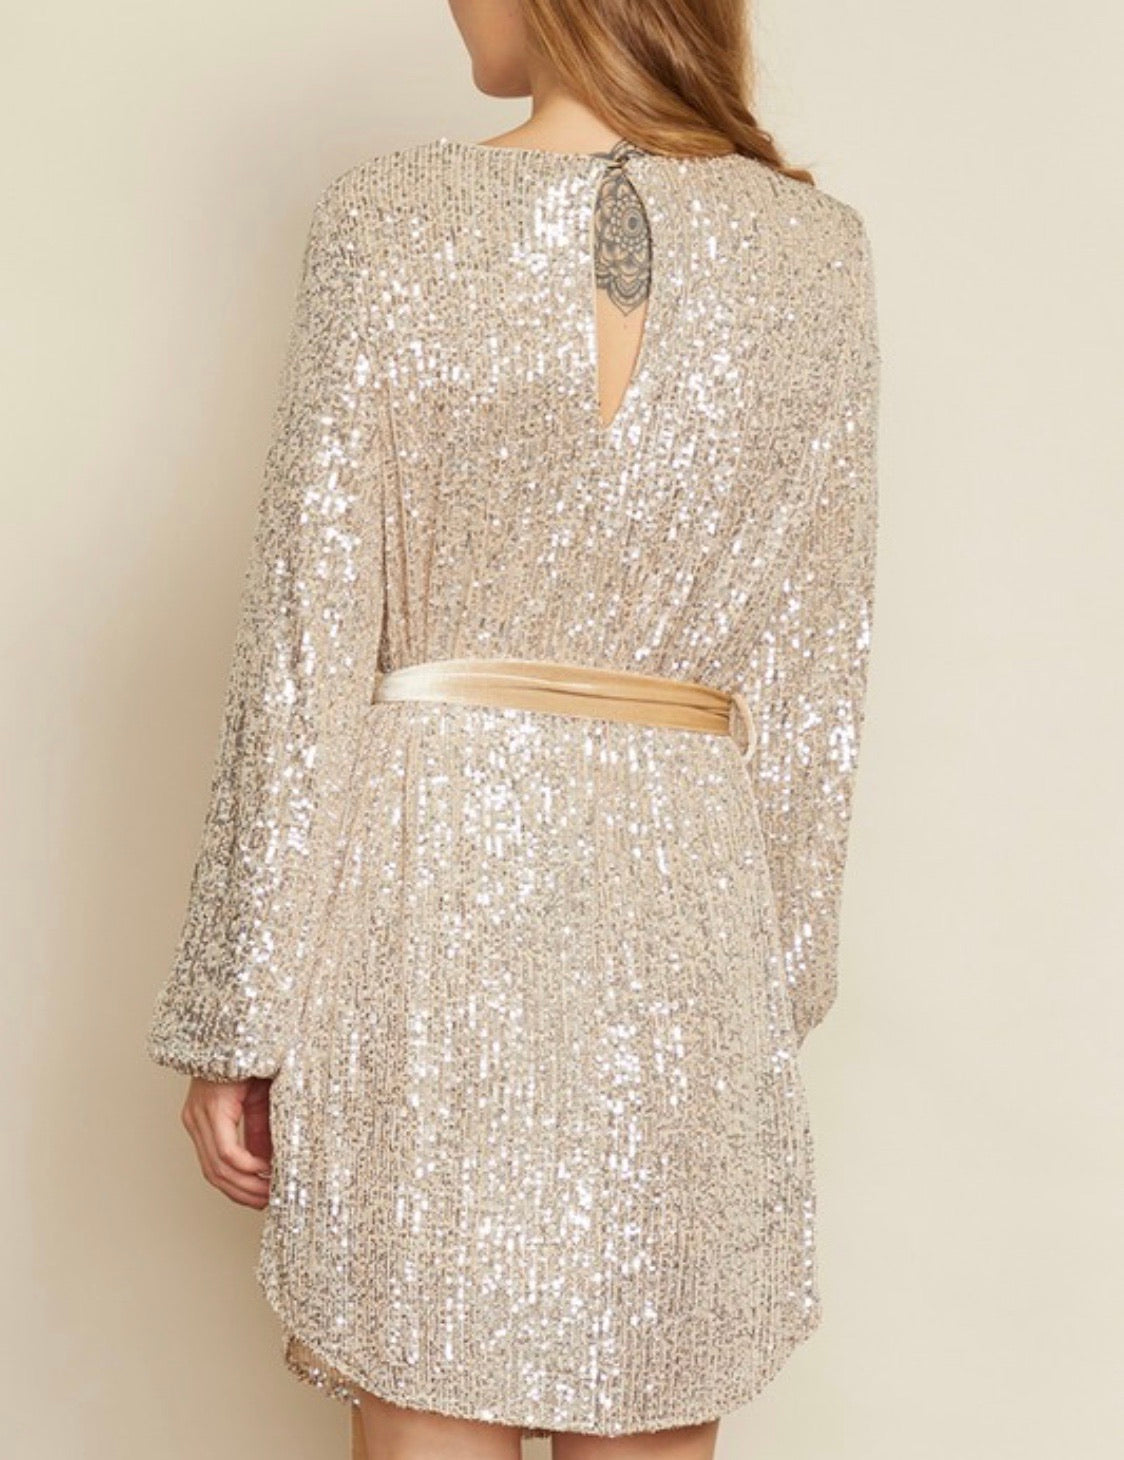 Glimpse Of Sparkle Dress